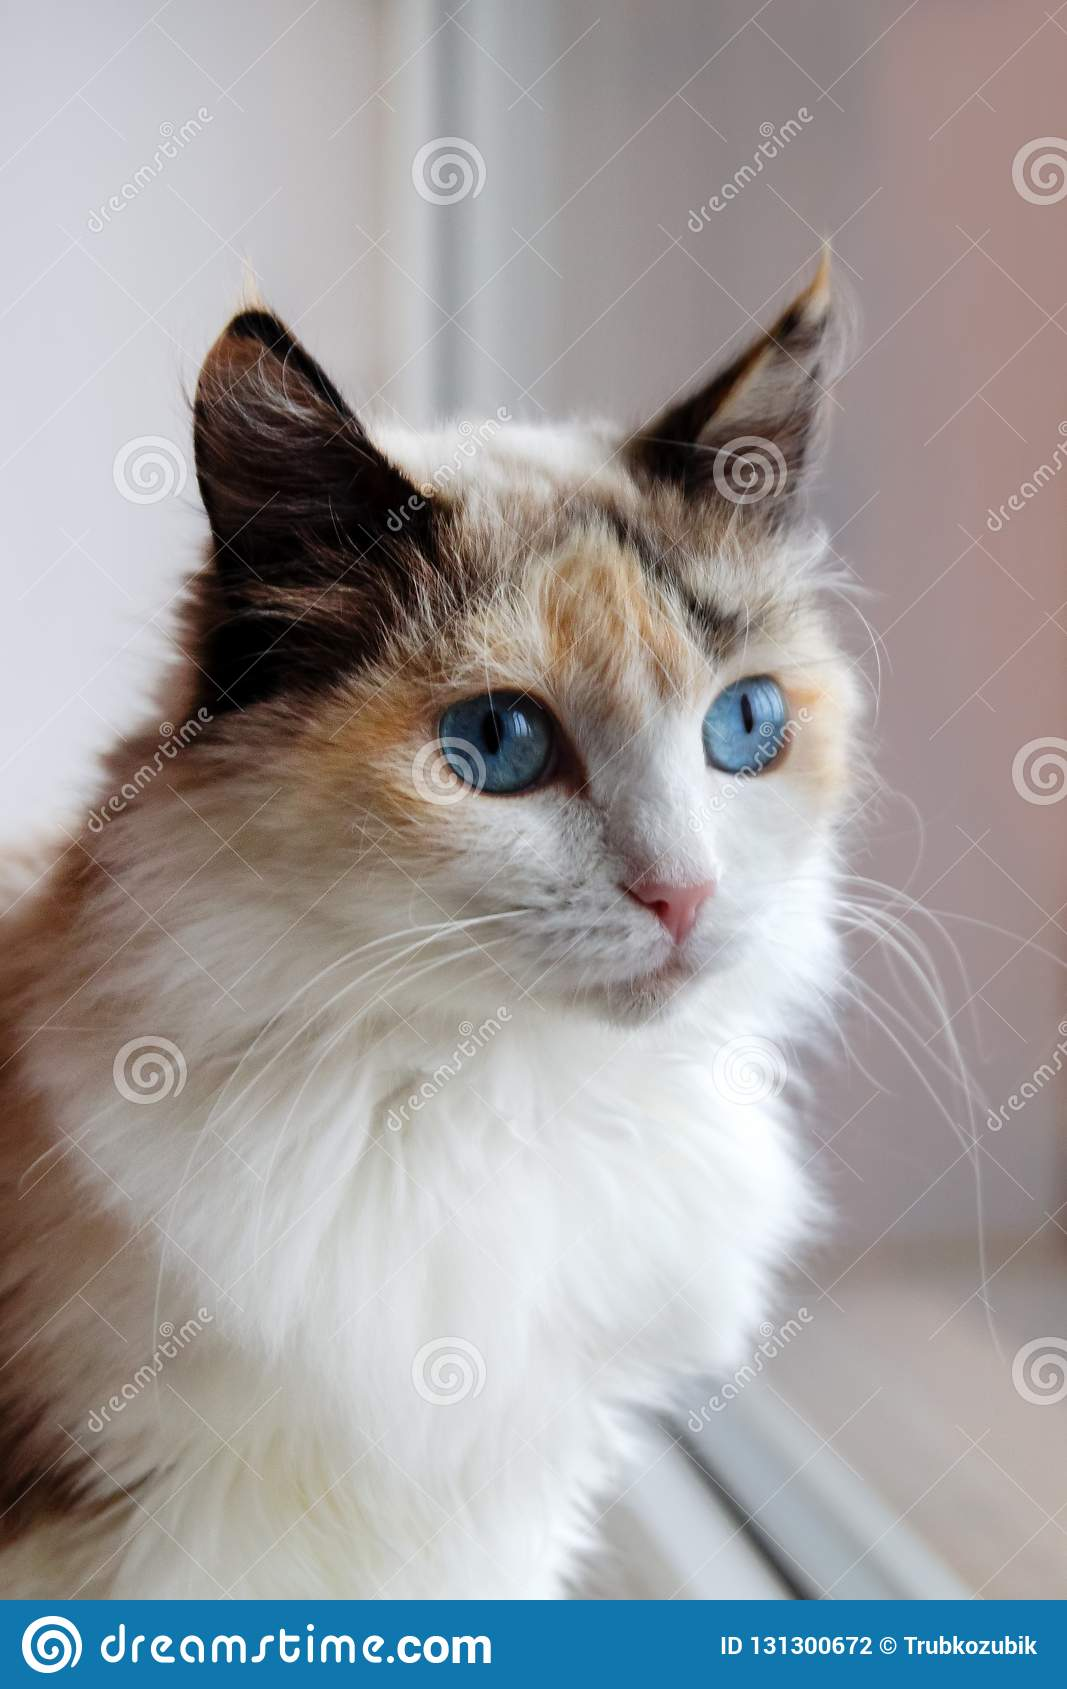 Portrait of adorable tortoiseshell fluffy cat with blue eyes sitting near to a window